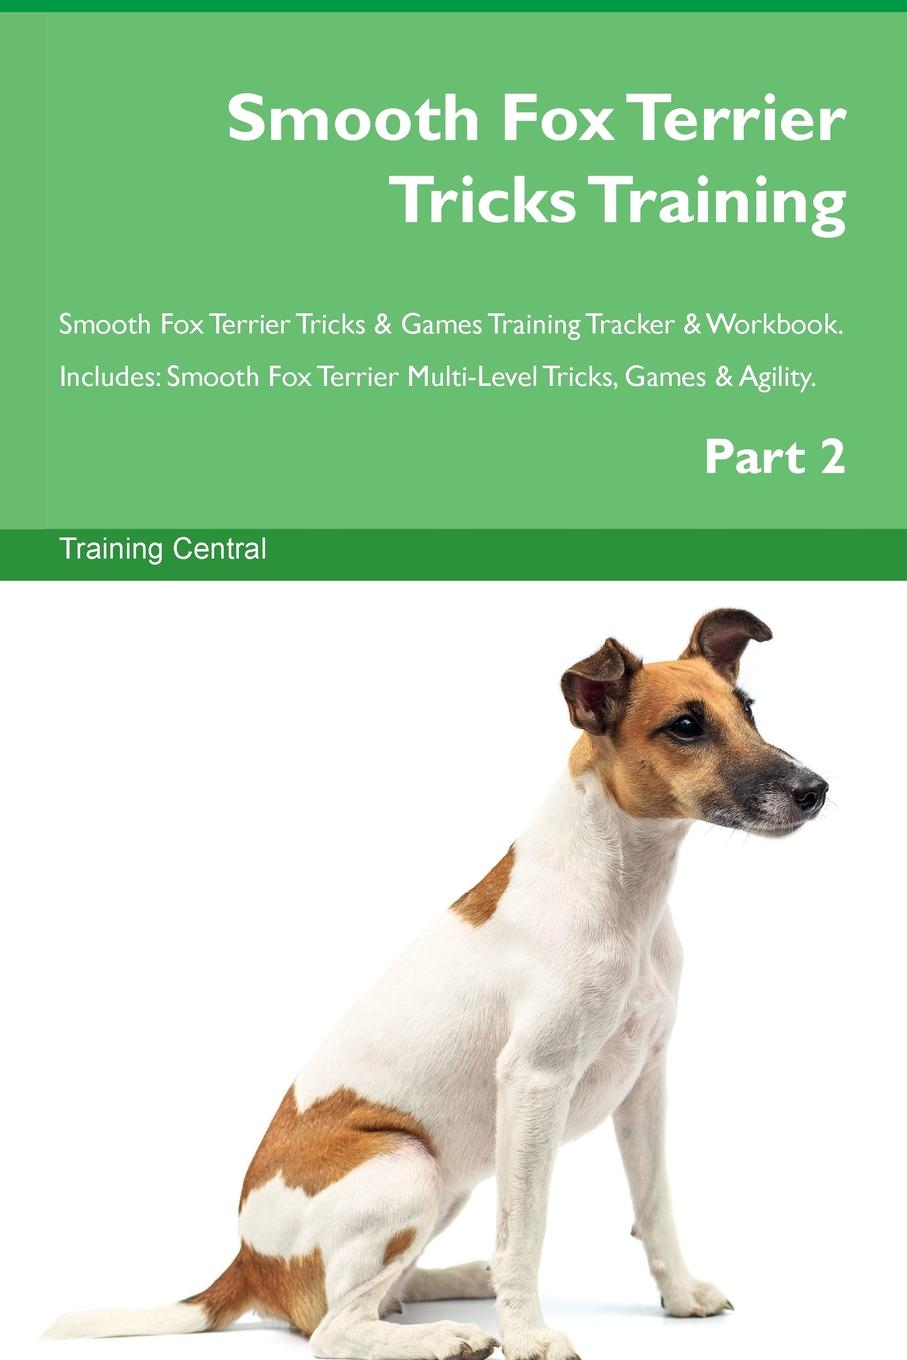 Training Central Smooth Fox Terrier Tricks Training Smooth Fox Terrier Tricks . Games Training Tracker . Workbook. Includes. Smooth Fox Terrier Multi-Level Tricks, Games . Agility. Part 2 fox s book of martyrs